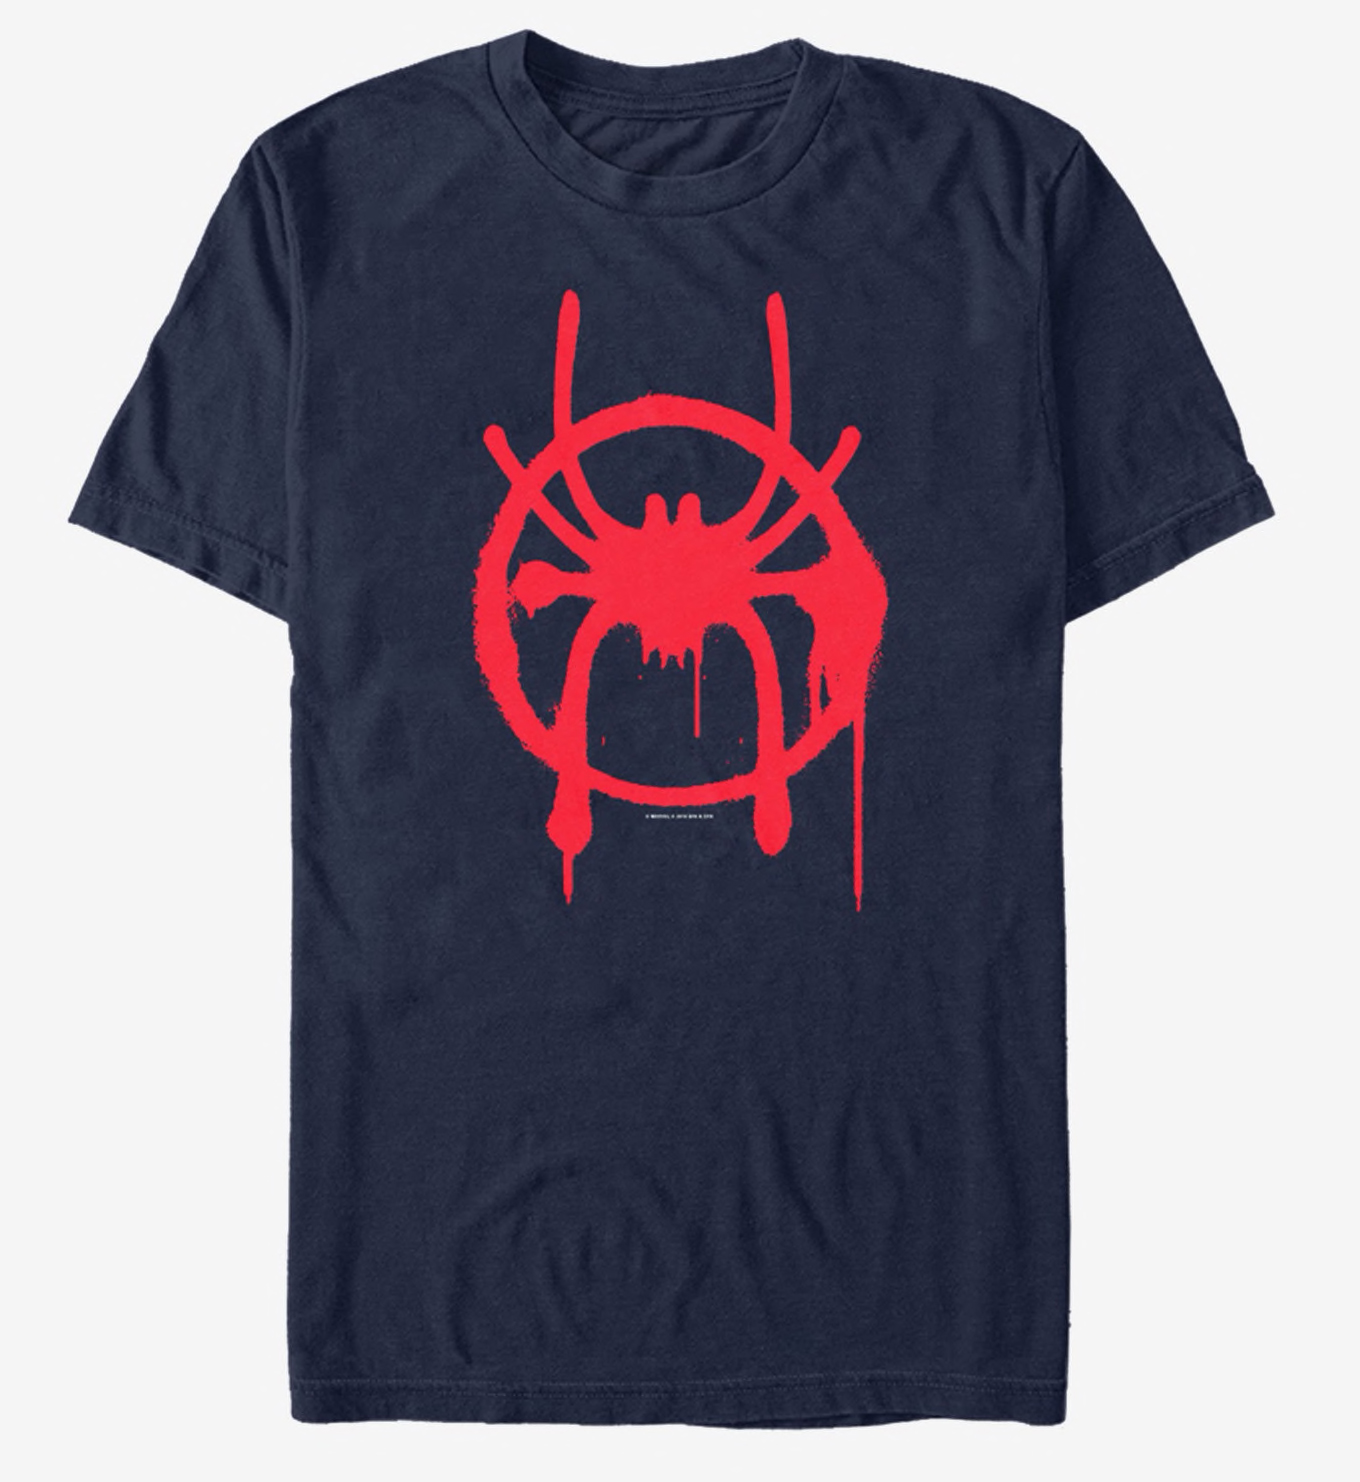 spiderman-spider-verse-shirt-match-jordan-1-origin-story-12